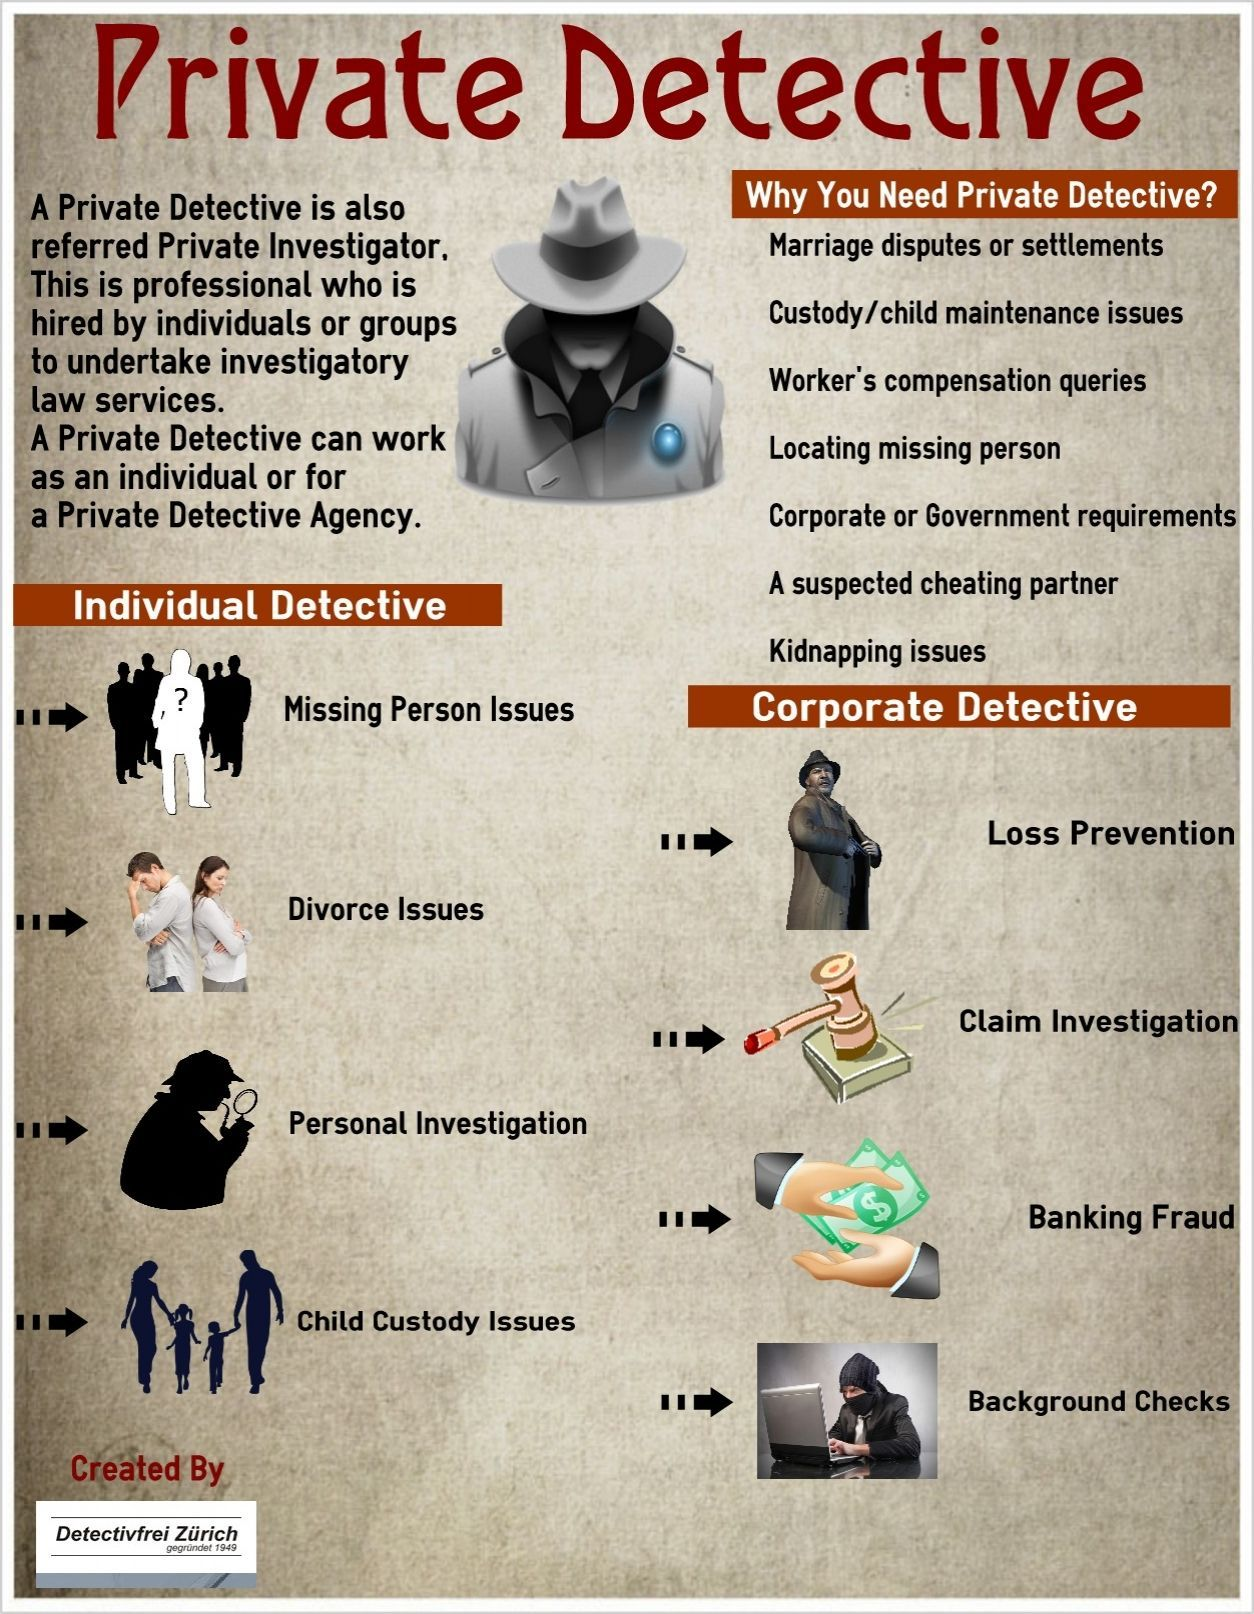 Criminalpsychologyvideos Mystery Writing Private Detective Criminal Psychology